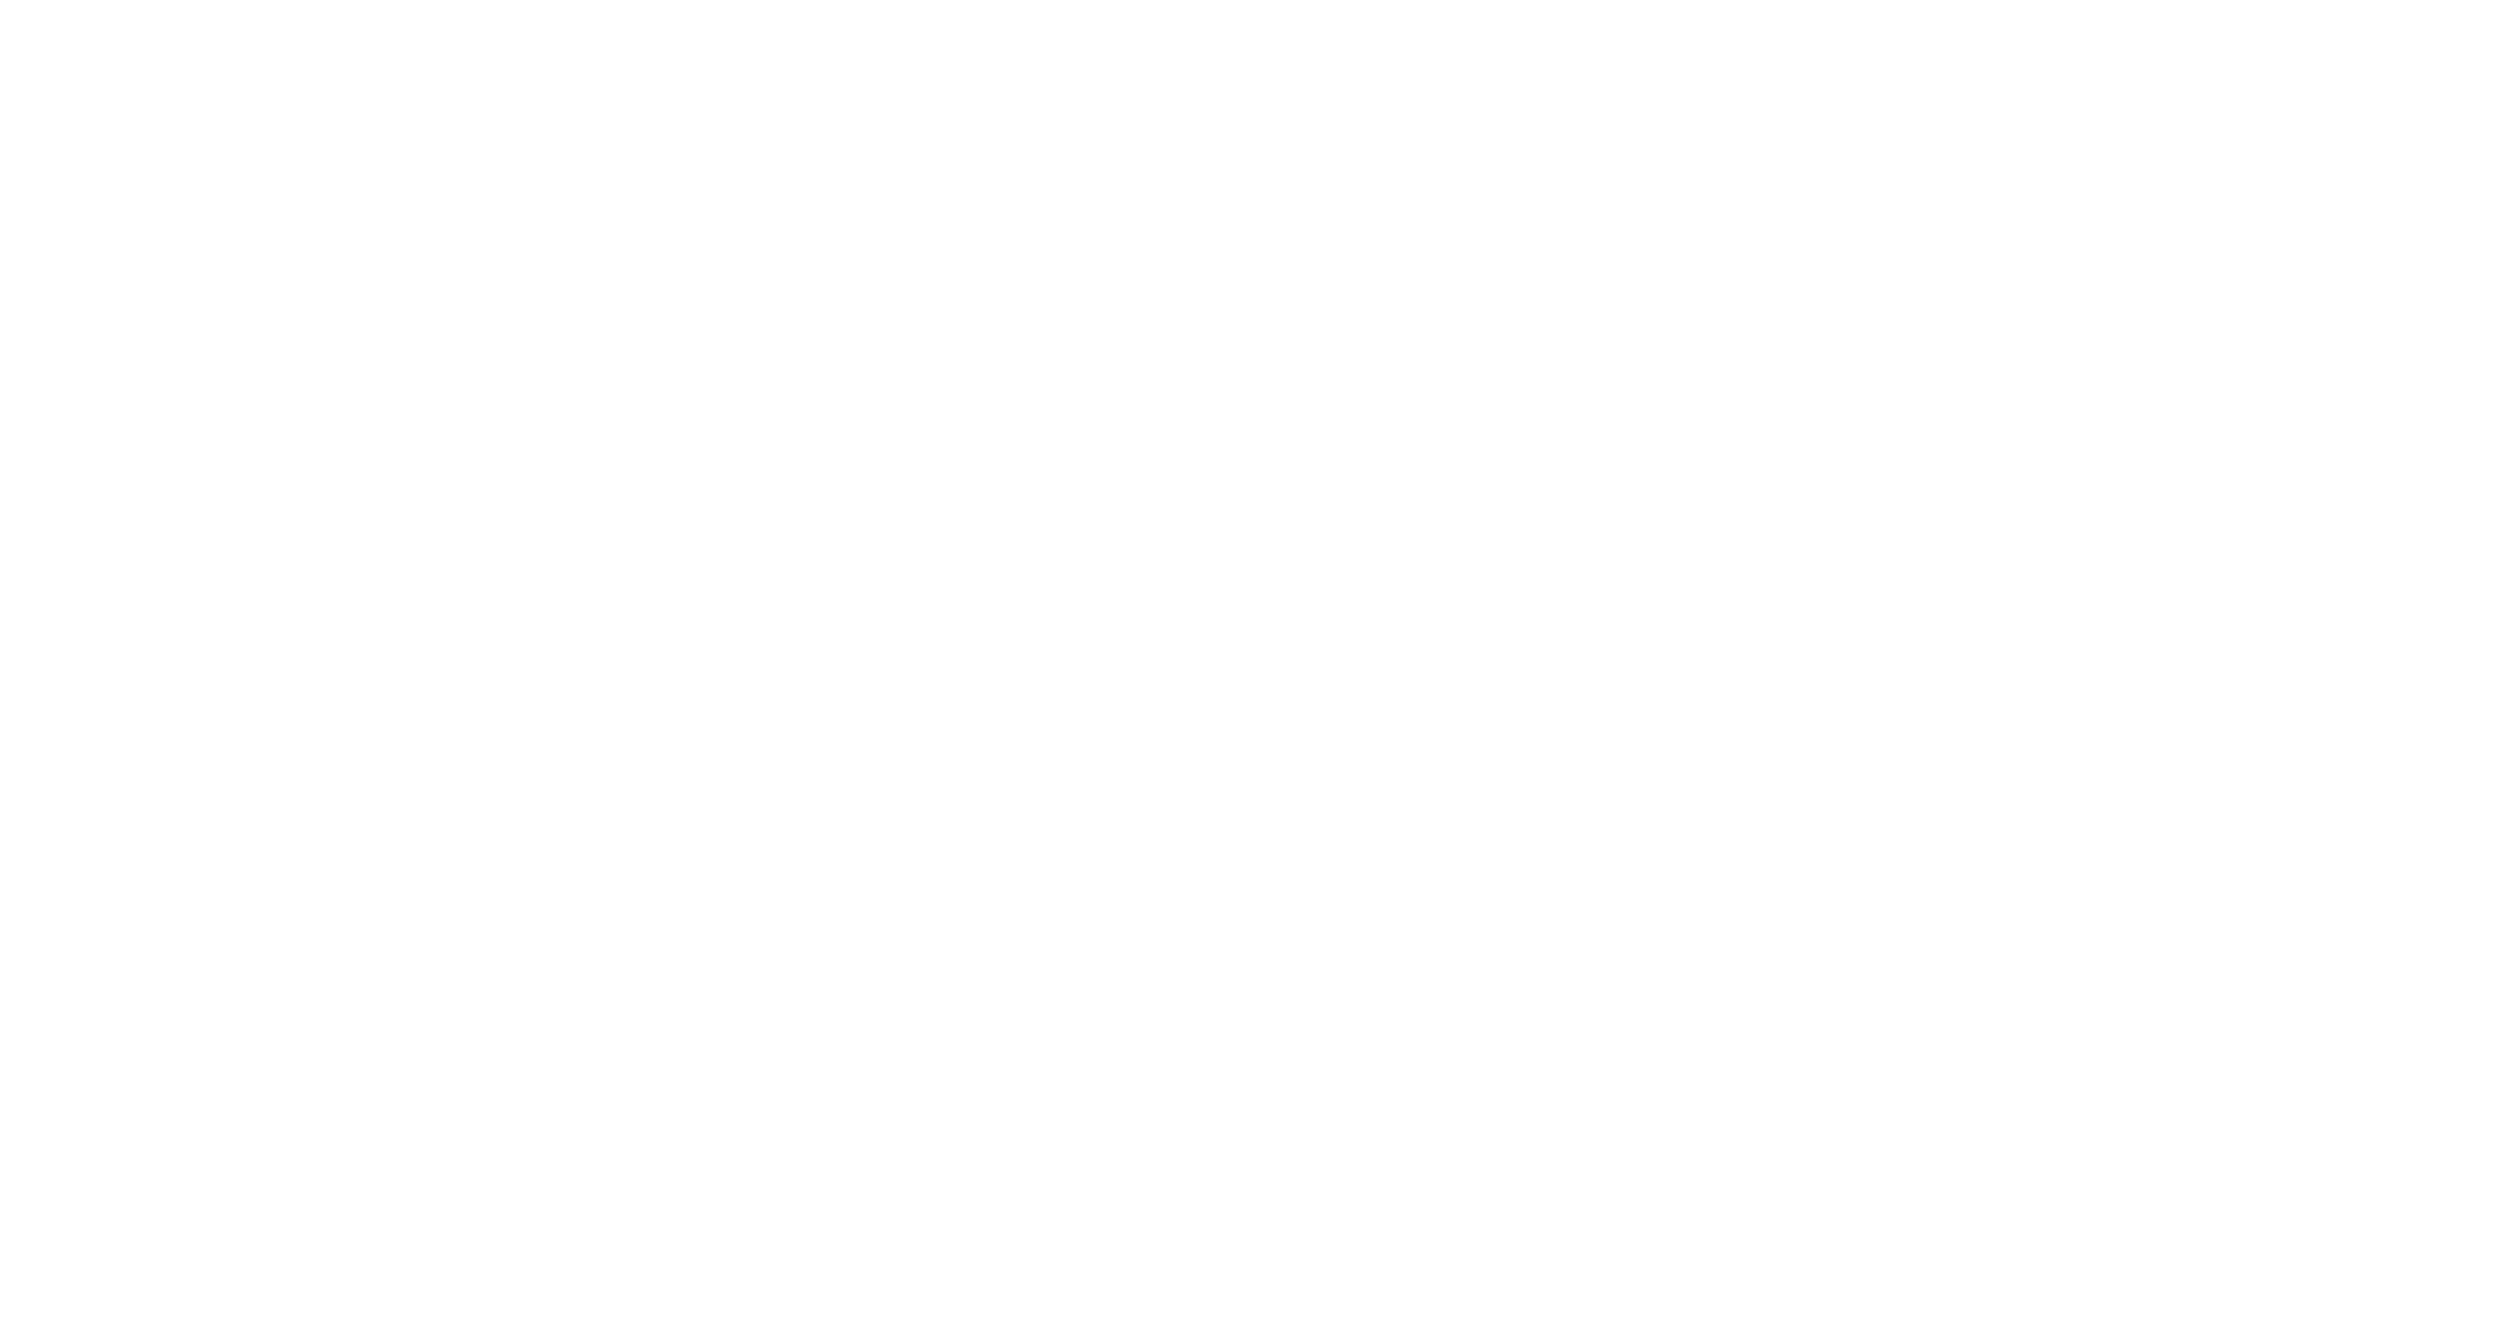 Capitol360-logowhite.png